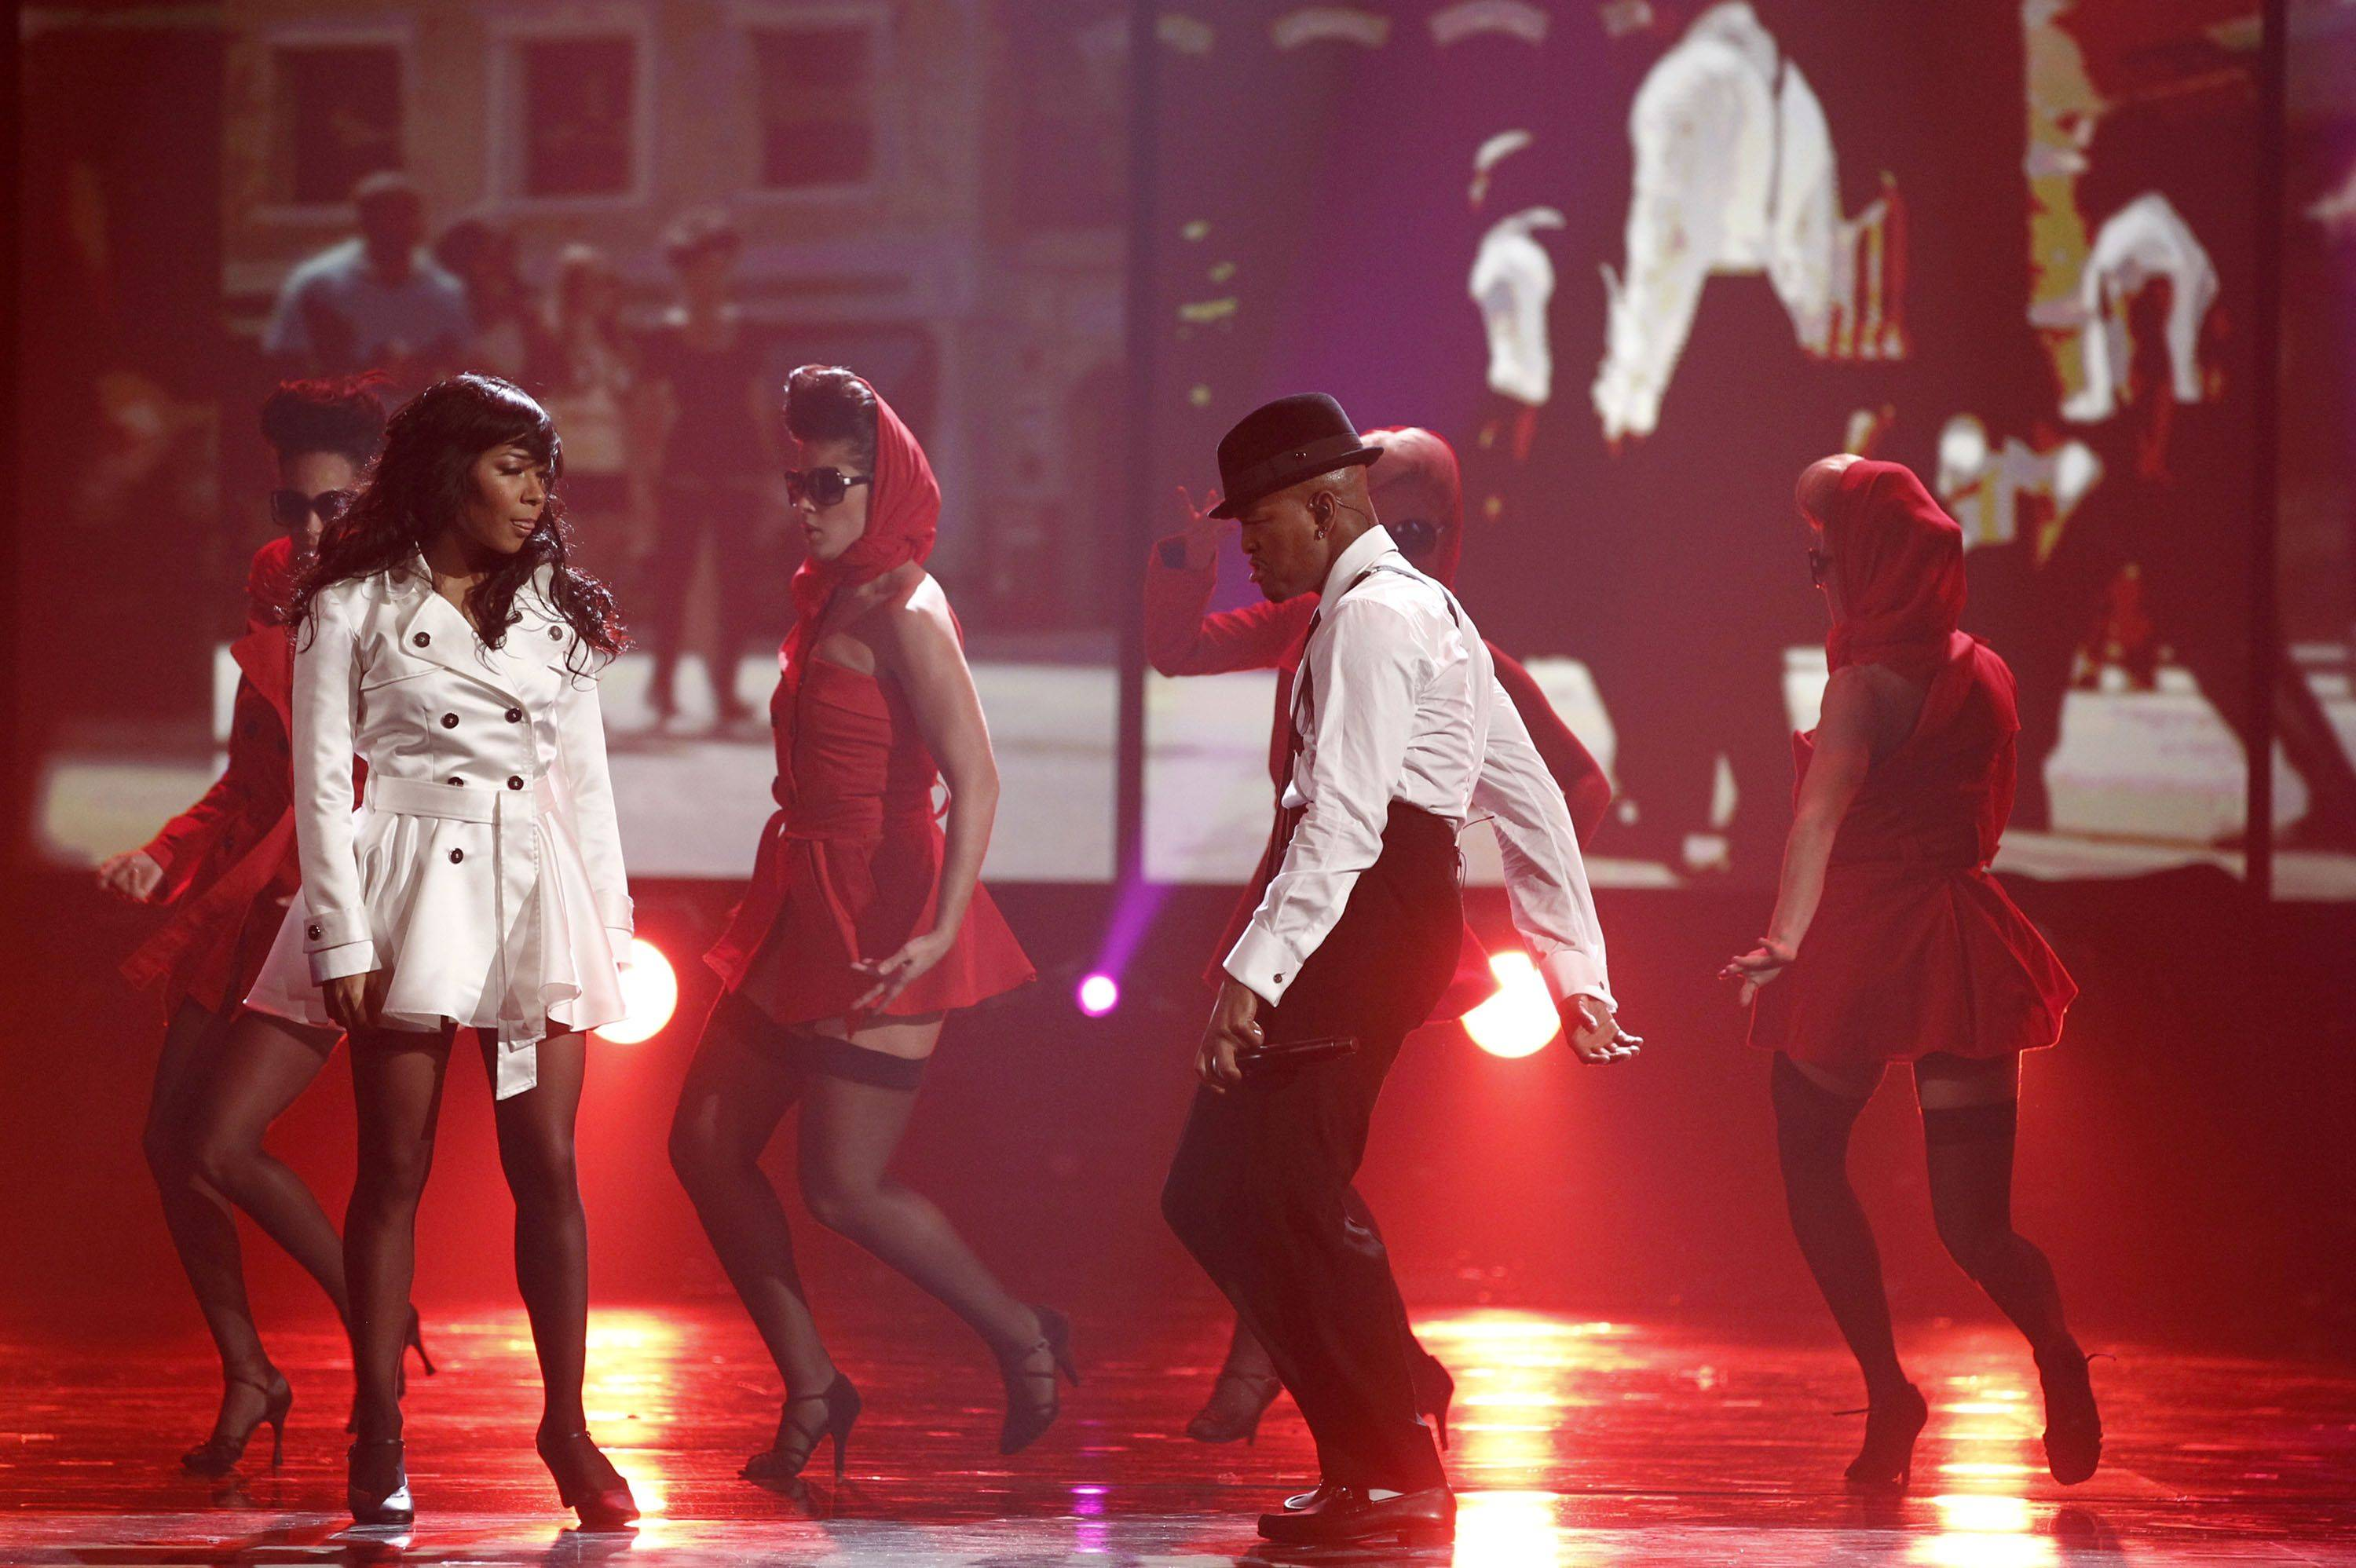 Neyo, right, performs at the 38th Annual American Music Awards on Sunday, Nov. 21, 2010 in Los Angeles.